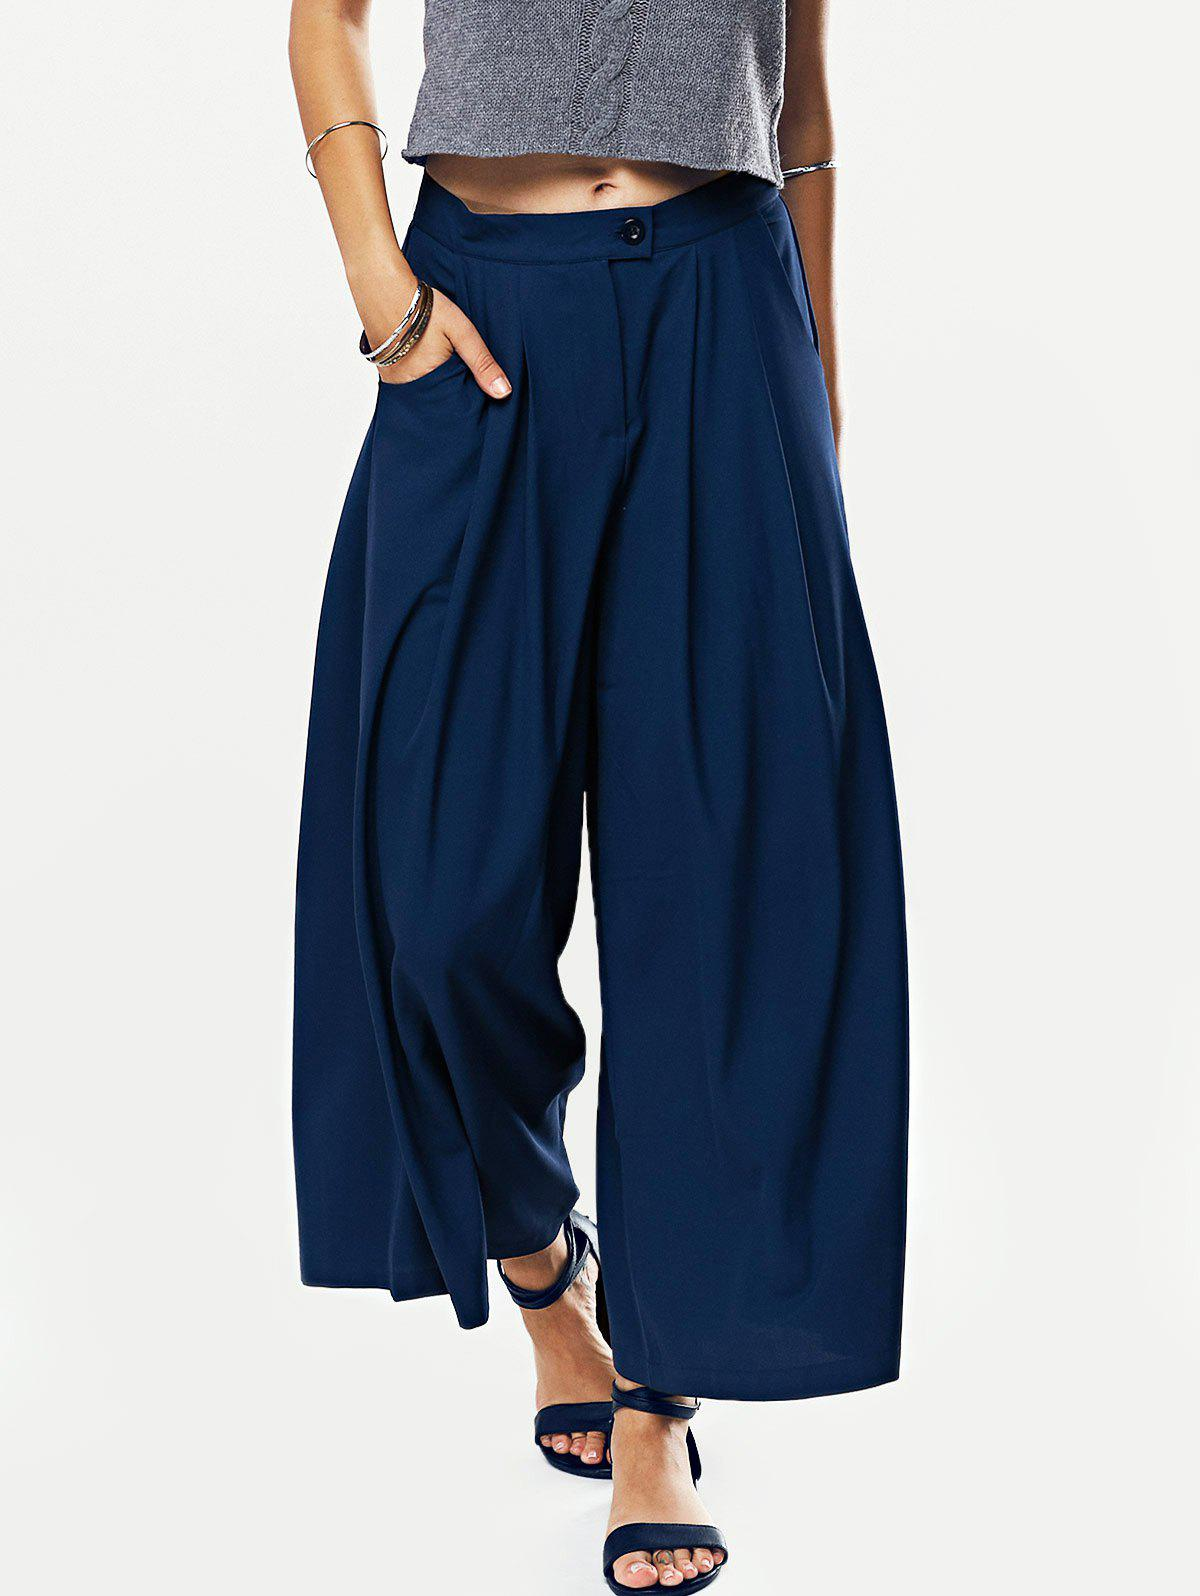 Solid Color Loose Fitting Wide Leg Pants - CADETBLUE L